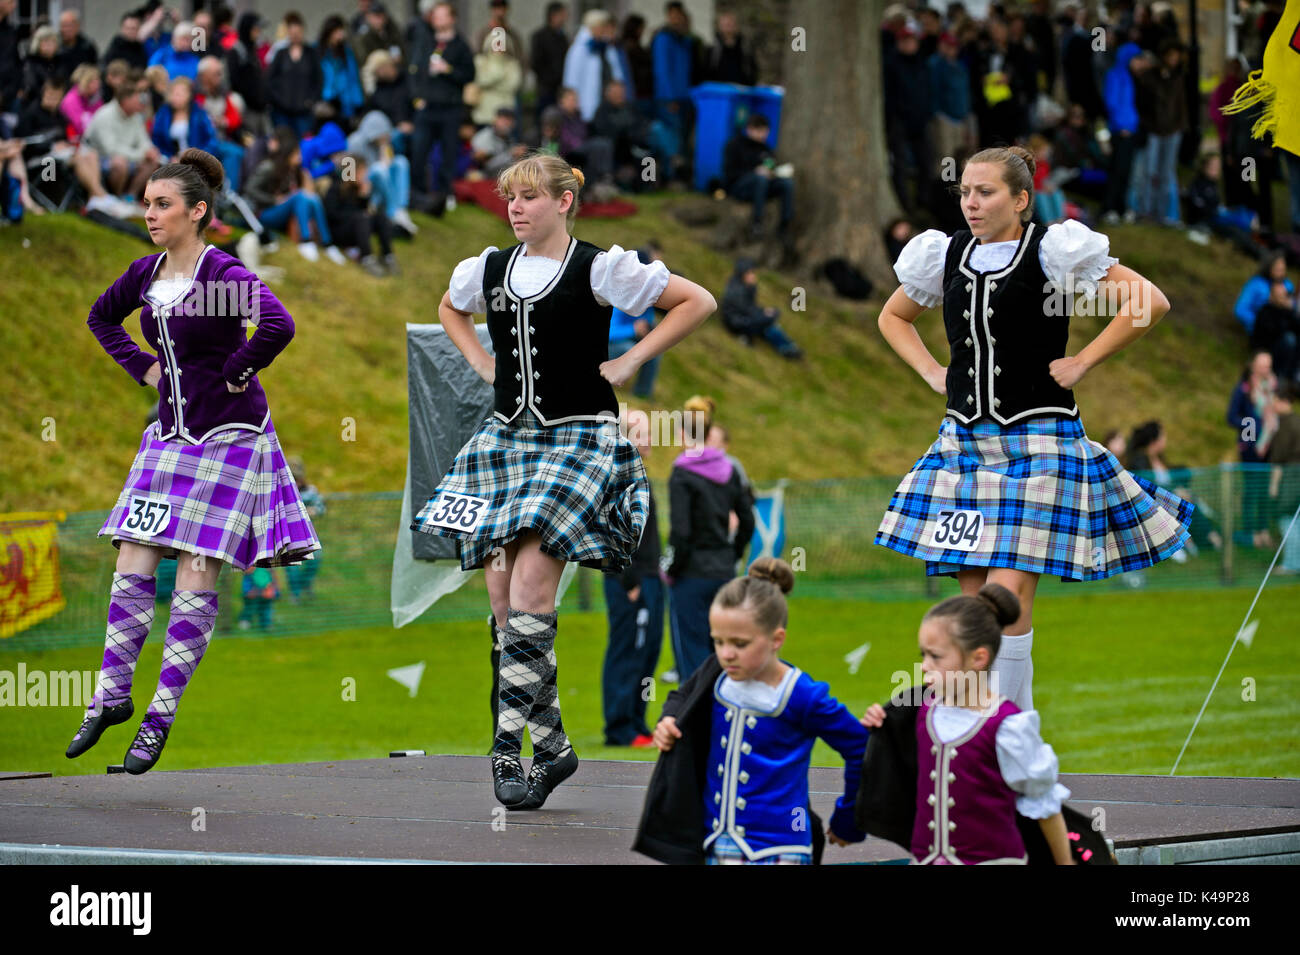 Girls In Kilted Skirts Performing At The Highland Dancing Competition At The Ceres Highland Games, Scotland, Great Britain - Stock Image